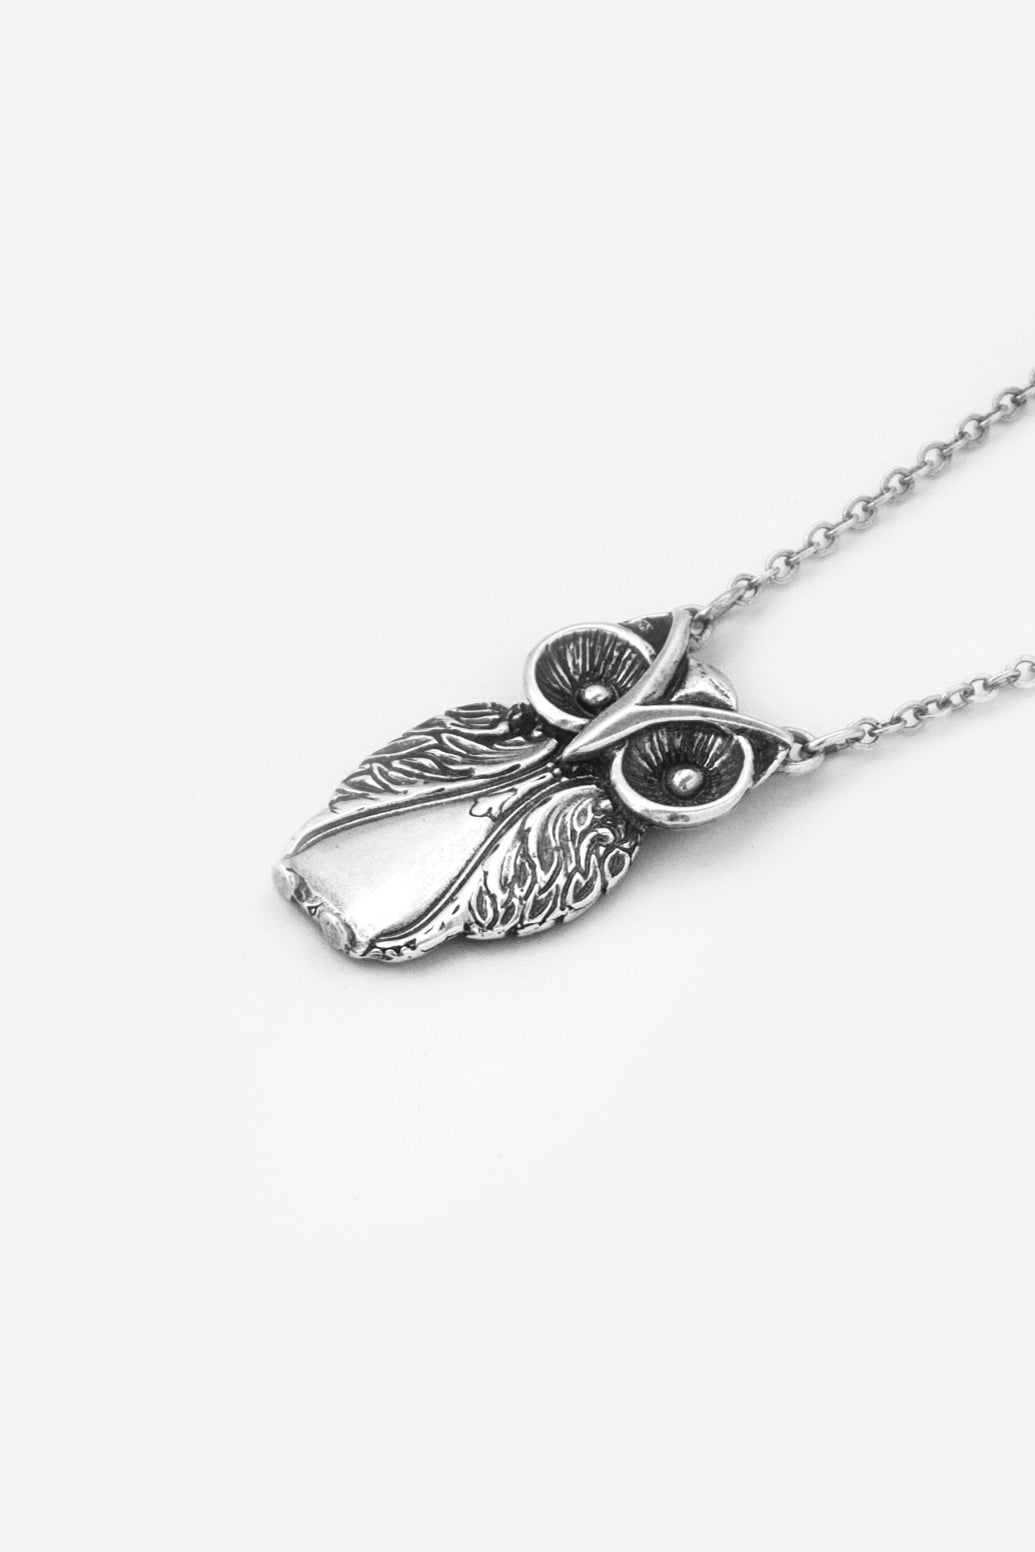 Owl Sterling Silver Necklace - Silver Spoon Jewelry